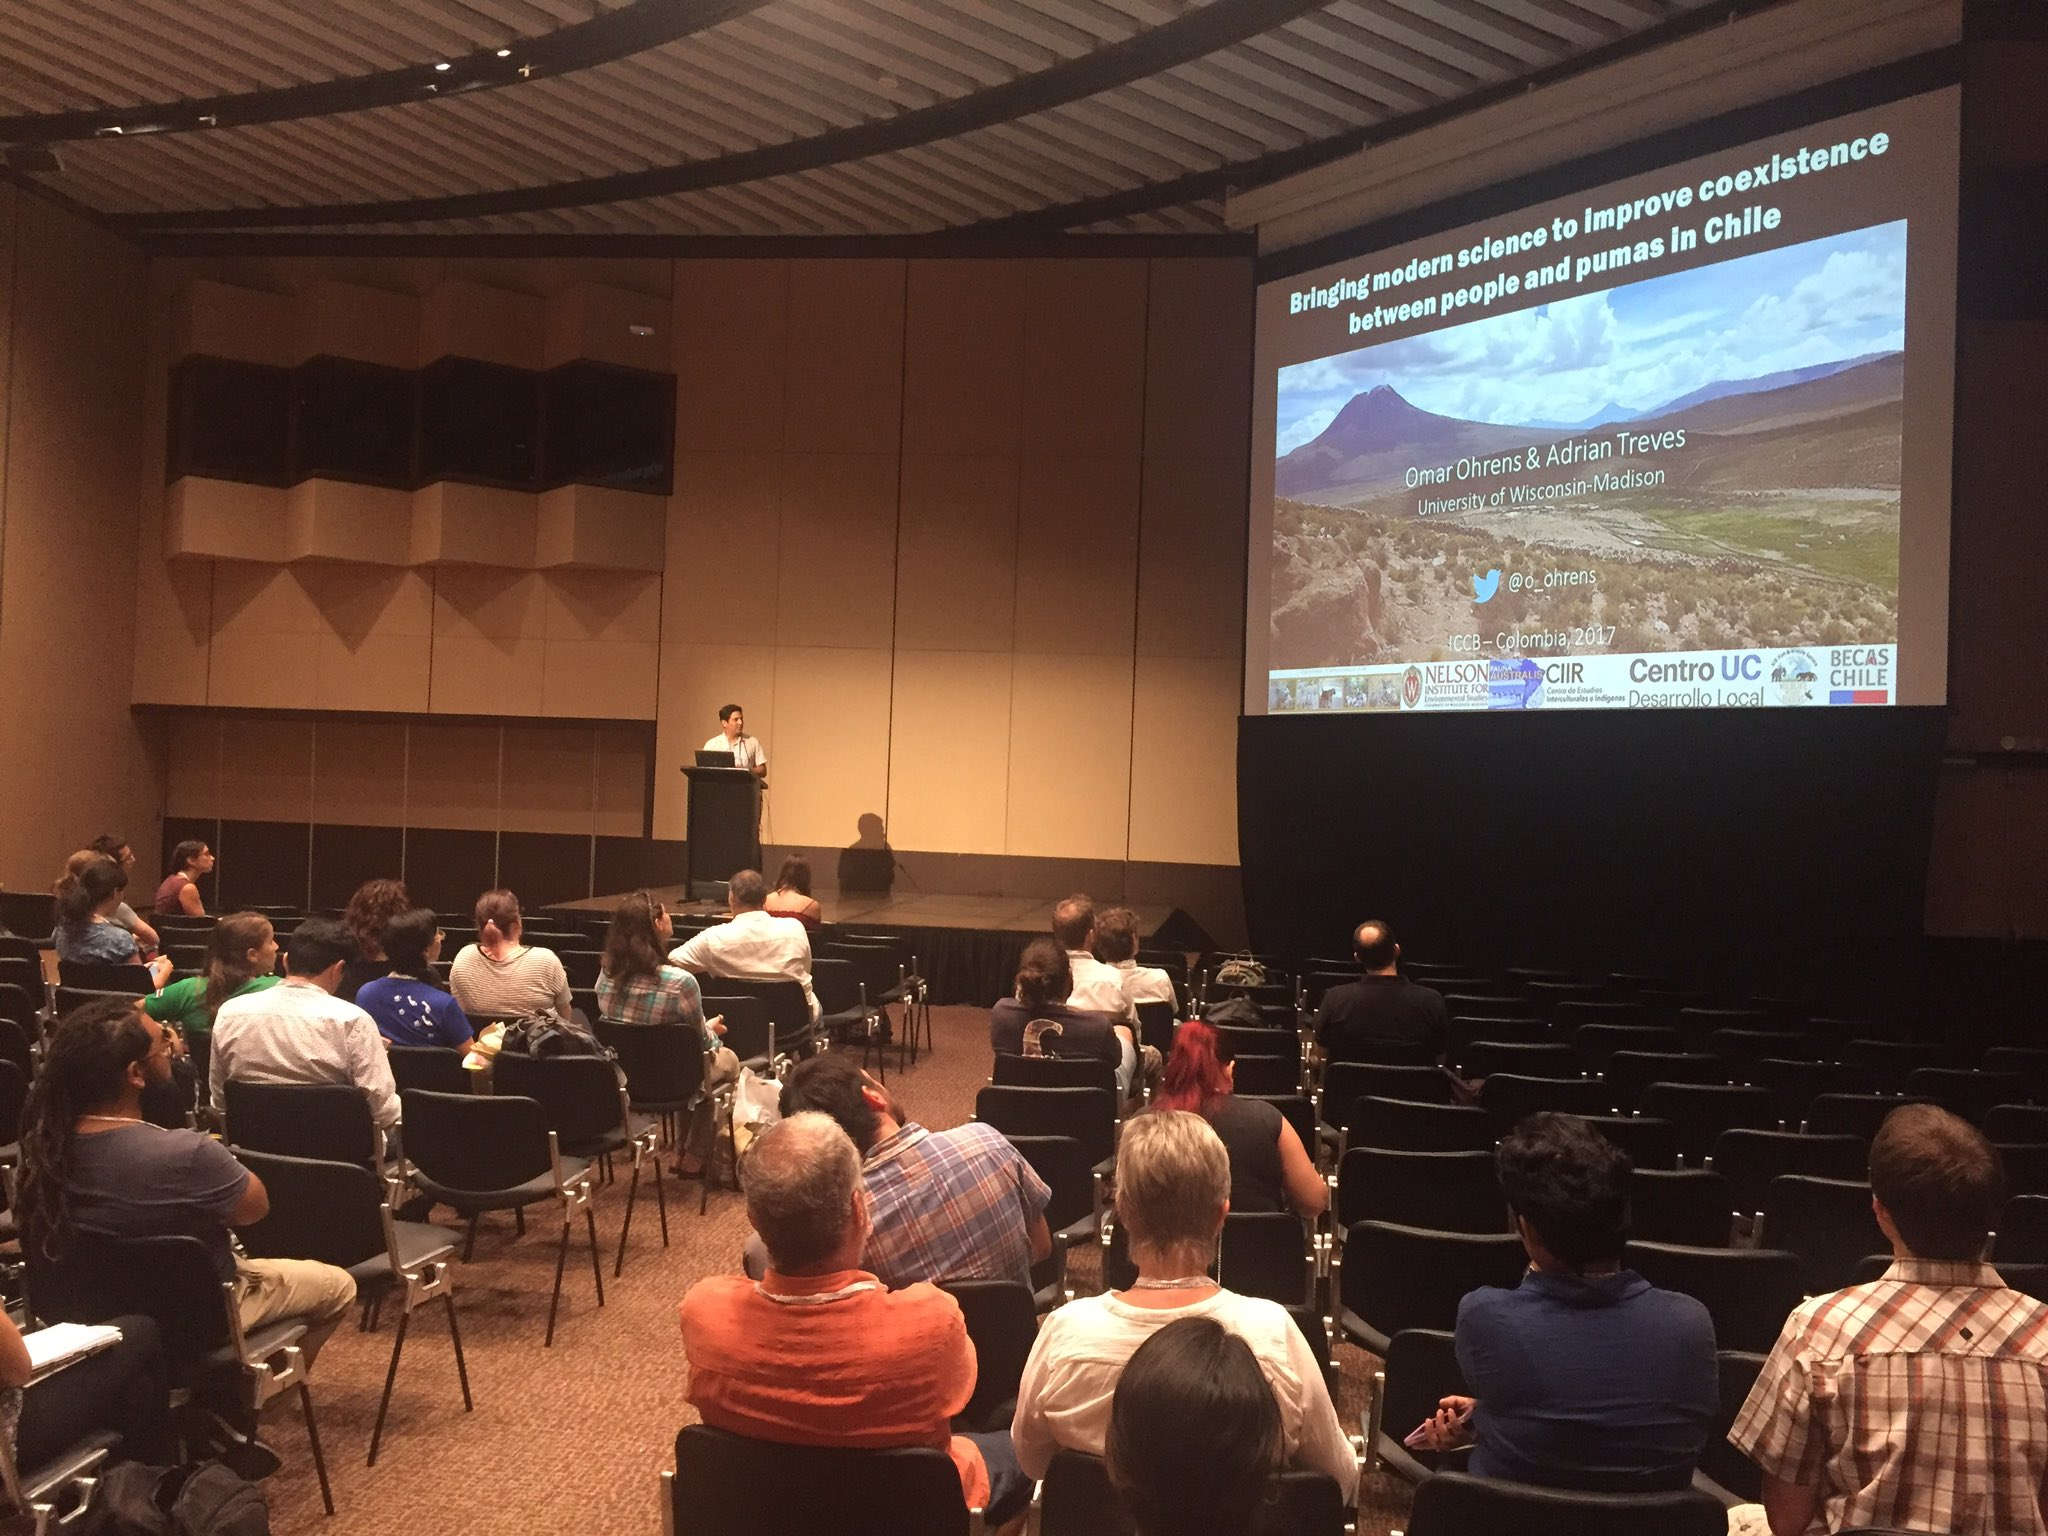 @o_ohrens gave a brilliant talk @ #ICCB2017 on how to integrate local perspectives for solving human-wildlife conflicts in the Andes https://t.co/D7l4bYCjzL